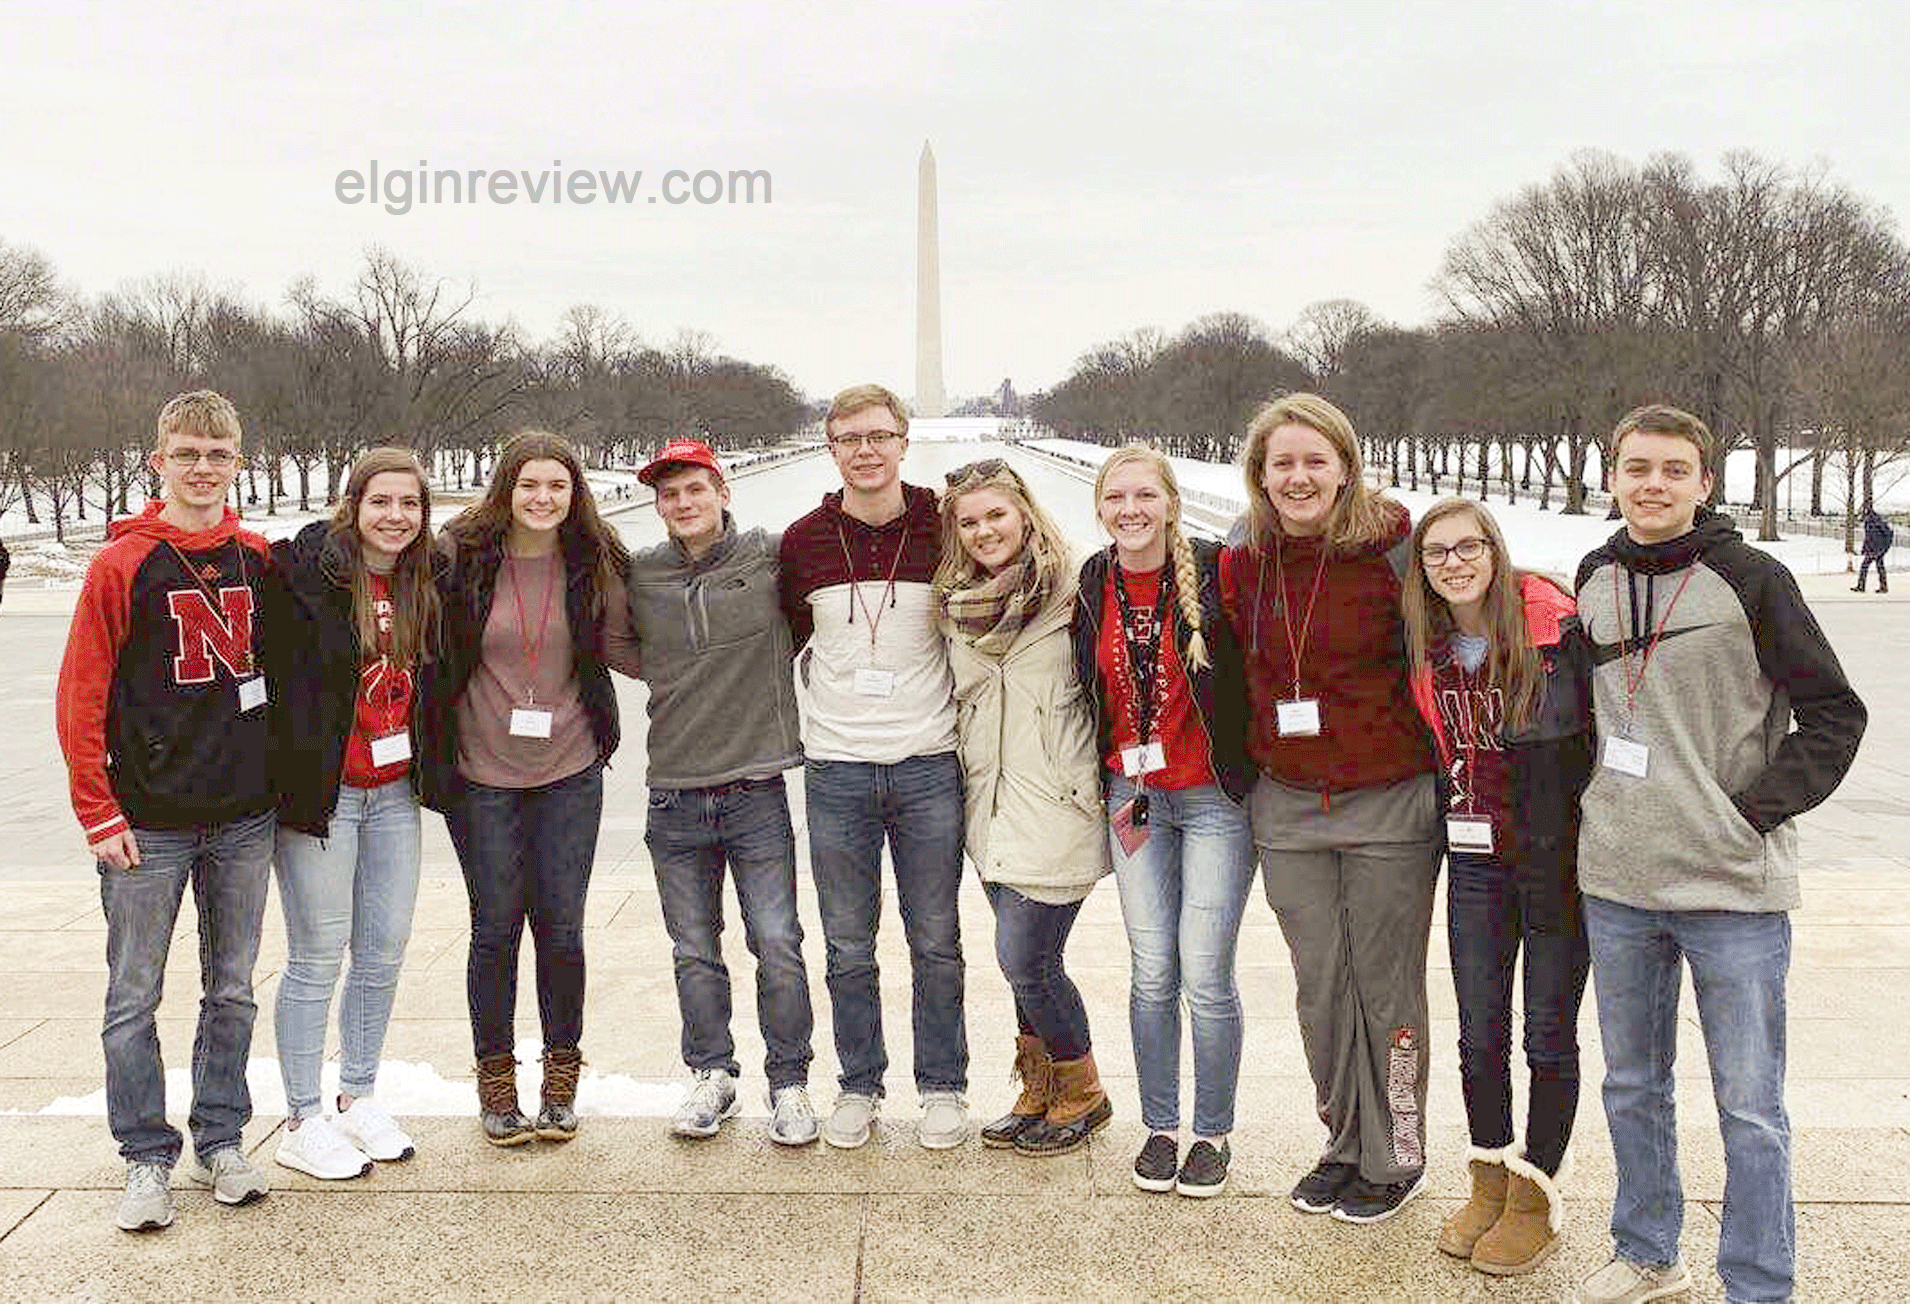 March for Life Elgin, Nebraska Antelope County Nebraska news RJ Lierman Marissa Preister Breanna Bartak Mark Staley Kyle Schumacher Skylar Reestman Faith Kinney Alyssa Burenheide Jasmine Dozler Layne Bullock Pope John XXIII Central Catholic High School PJCC